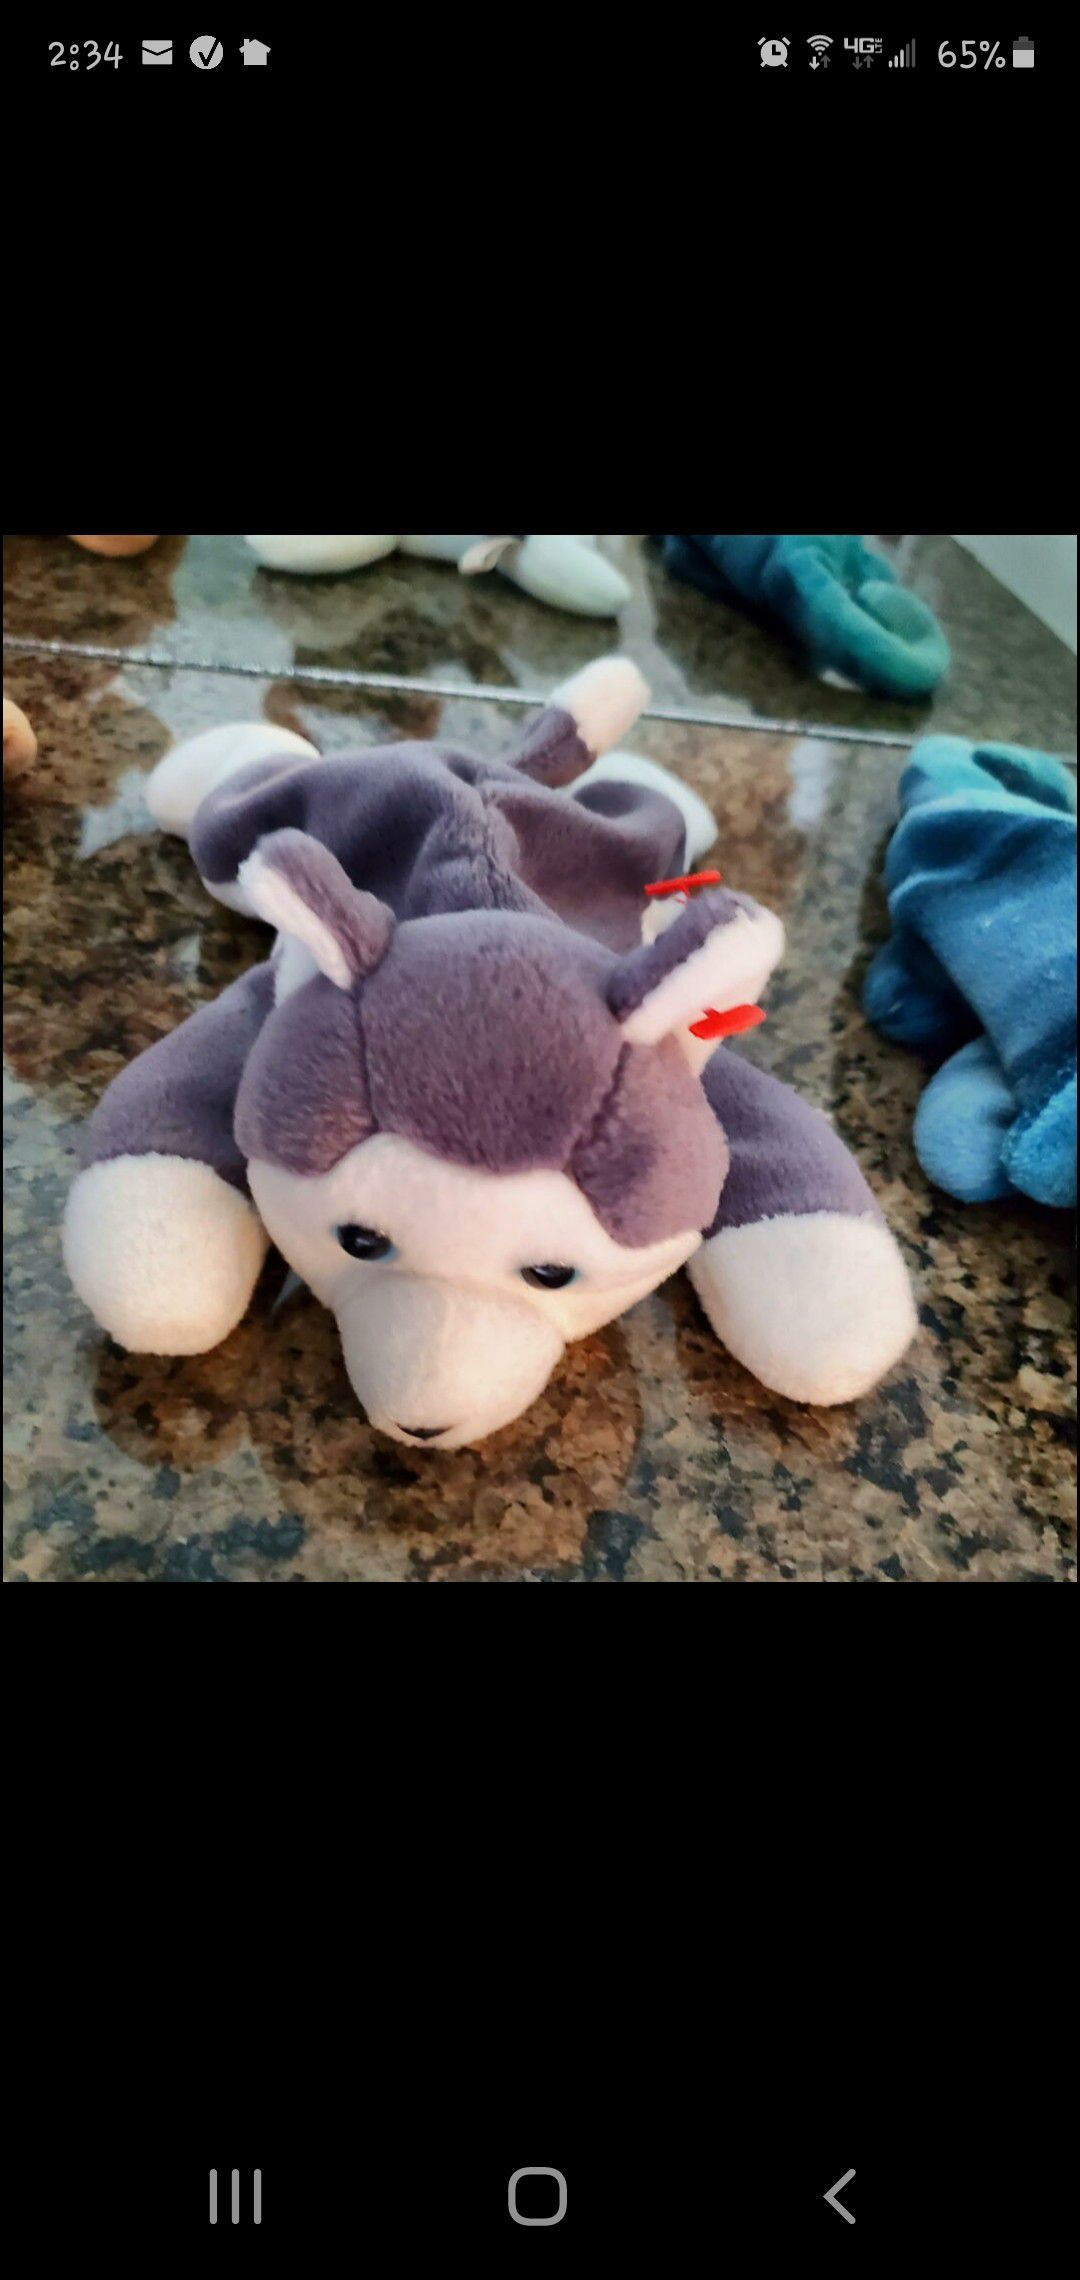 All 3 Retired TY Beanie Babies Classic Original Collectors